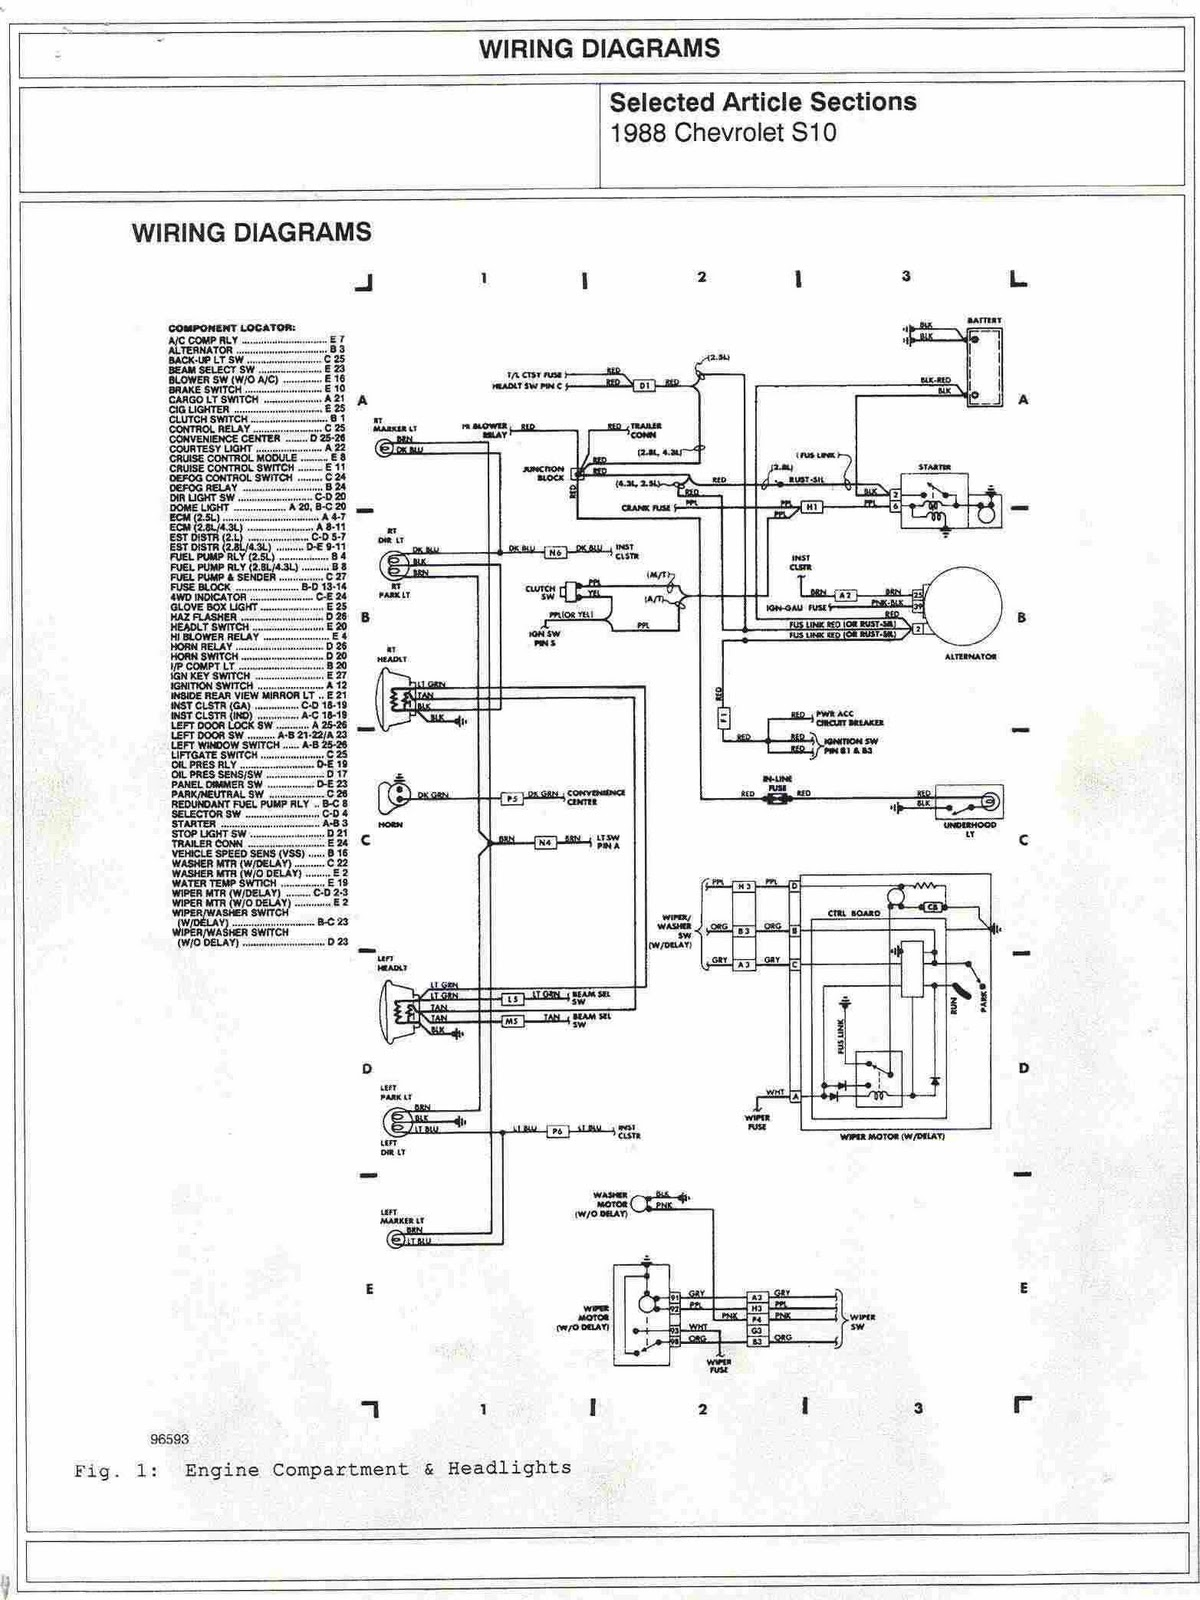 2009 chevrolet captiva wiring diagram 8 9 artatec automobile de \u20222009 chevrolet captiva wiring diagram best wiring library rh 33 freemoviesonline be 2016 chevrolet captiva interior 2008 chevrolet captiva